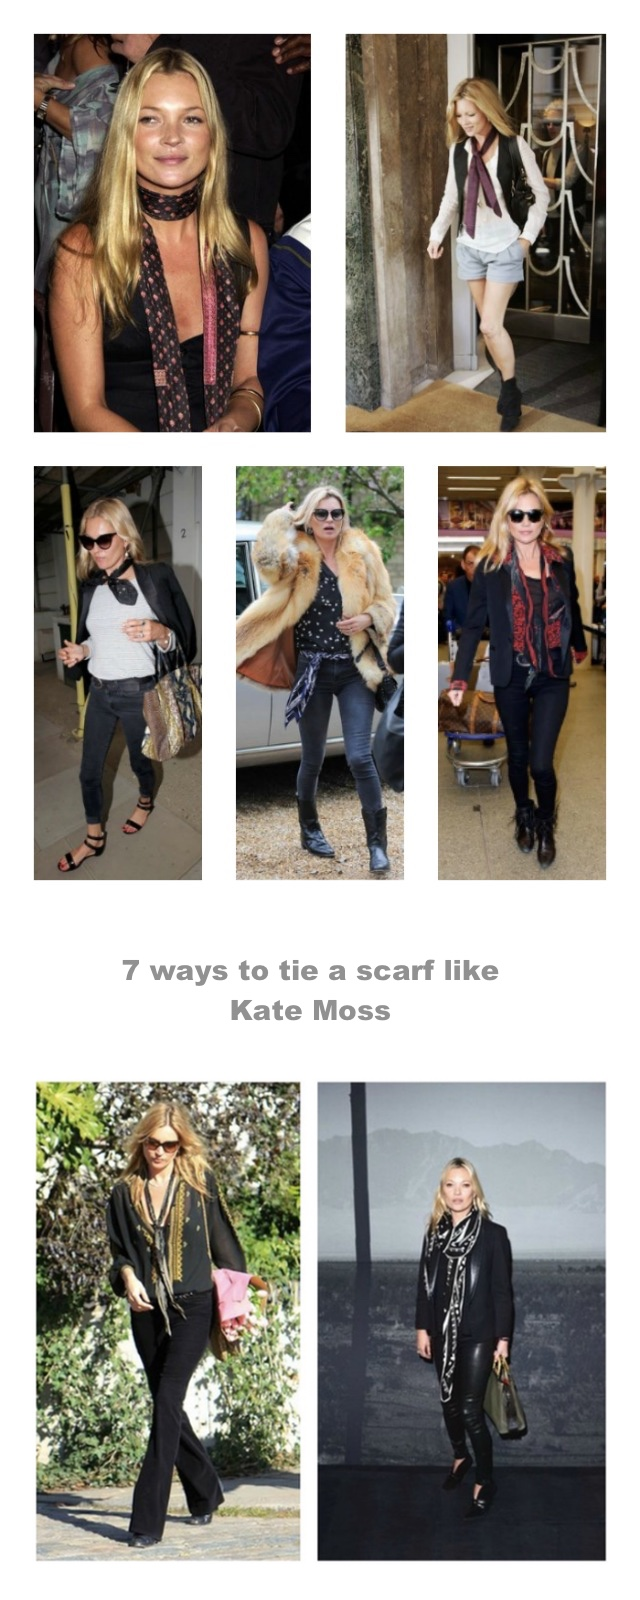 7 ways to tie a scarf like kate moss